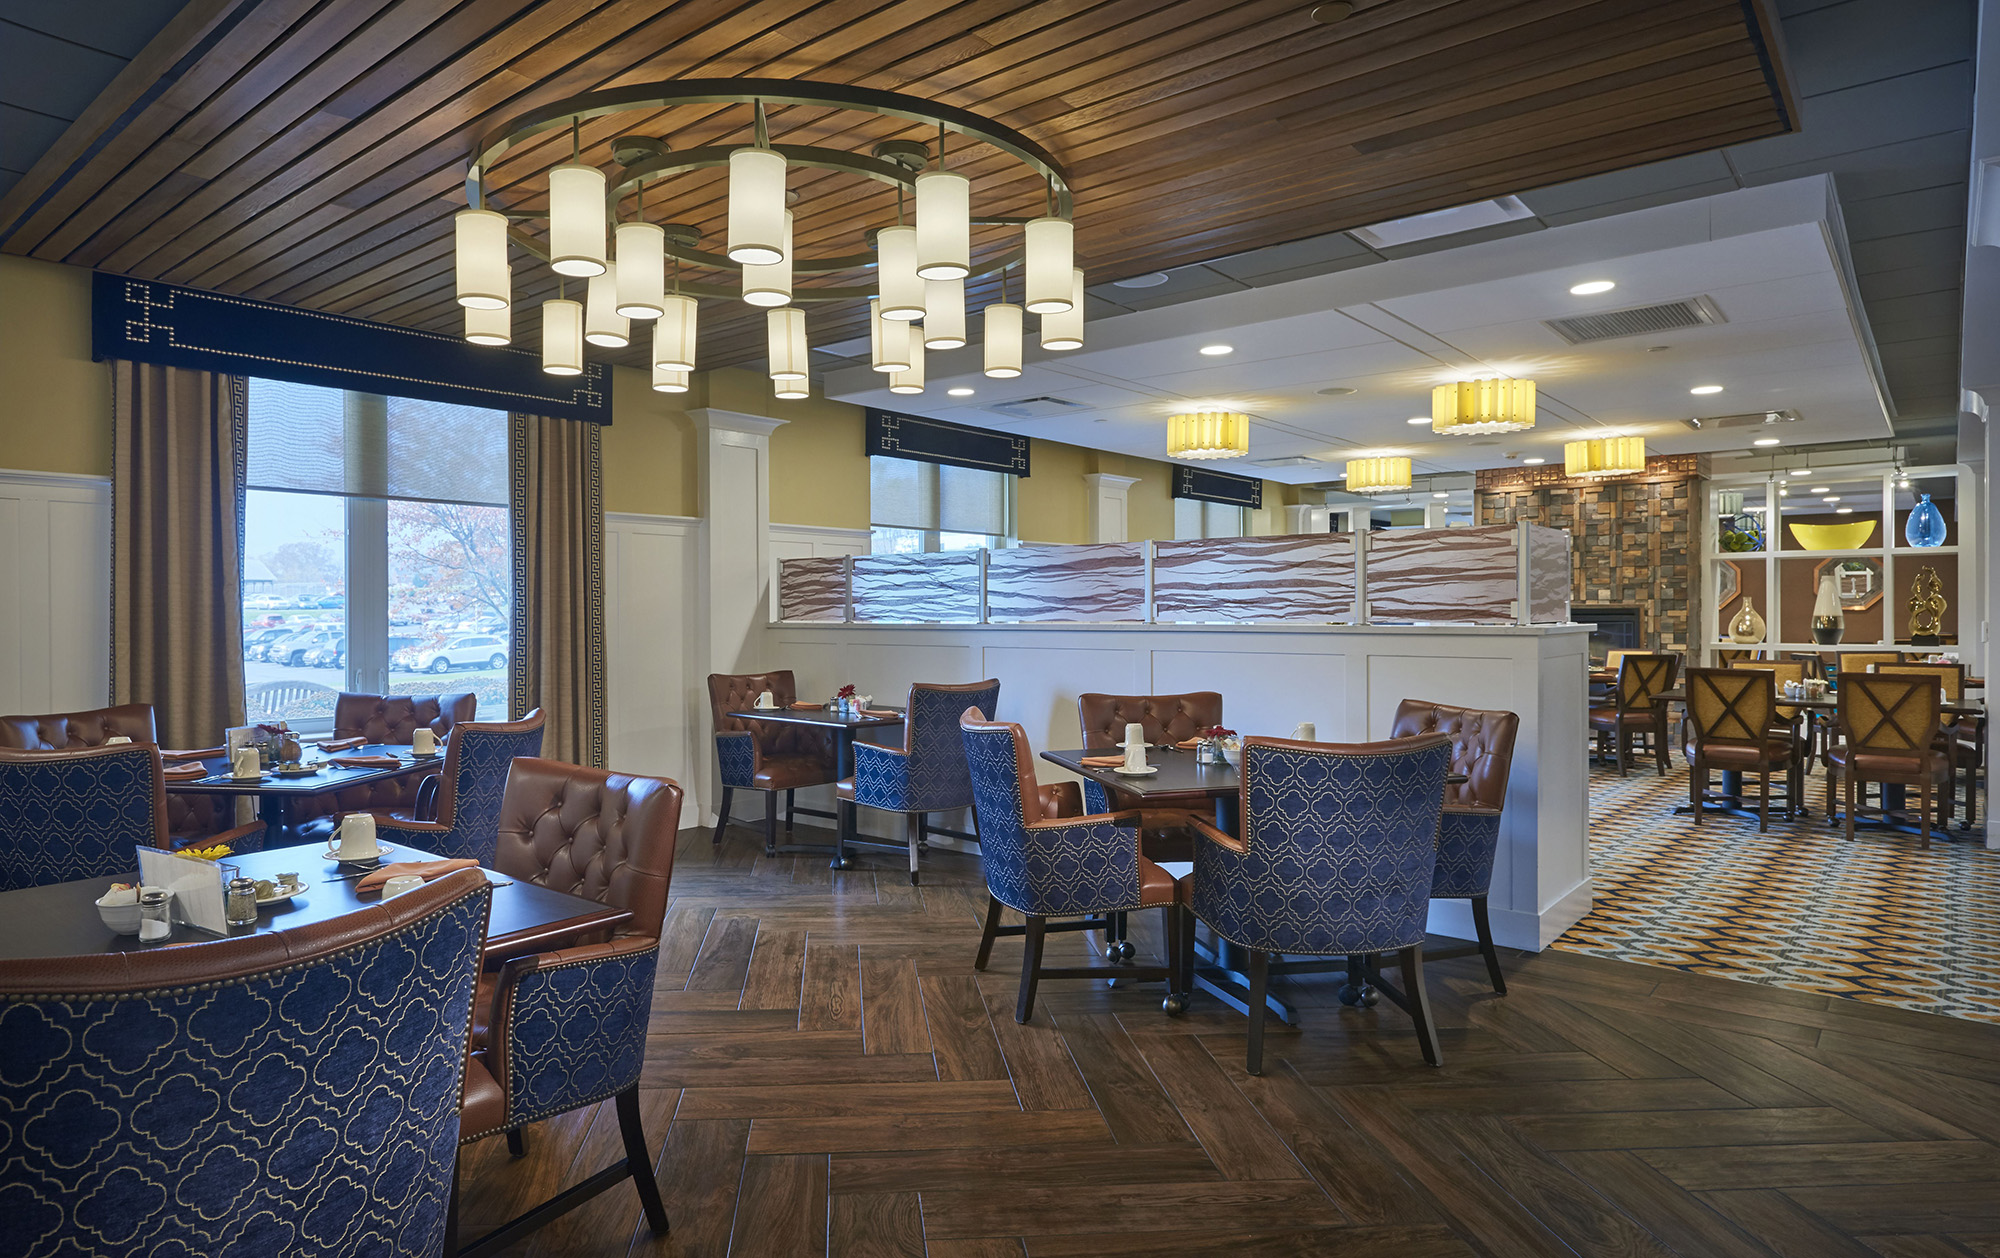 In Particular, Food Service And Dining Design Has Shifted Towards  Hospitality, Providing A Sense Of Activity And Destination For Residents.